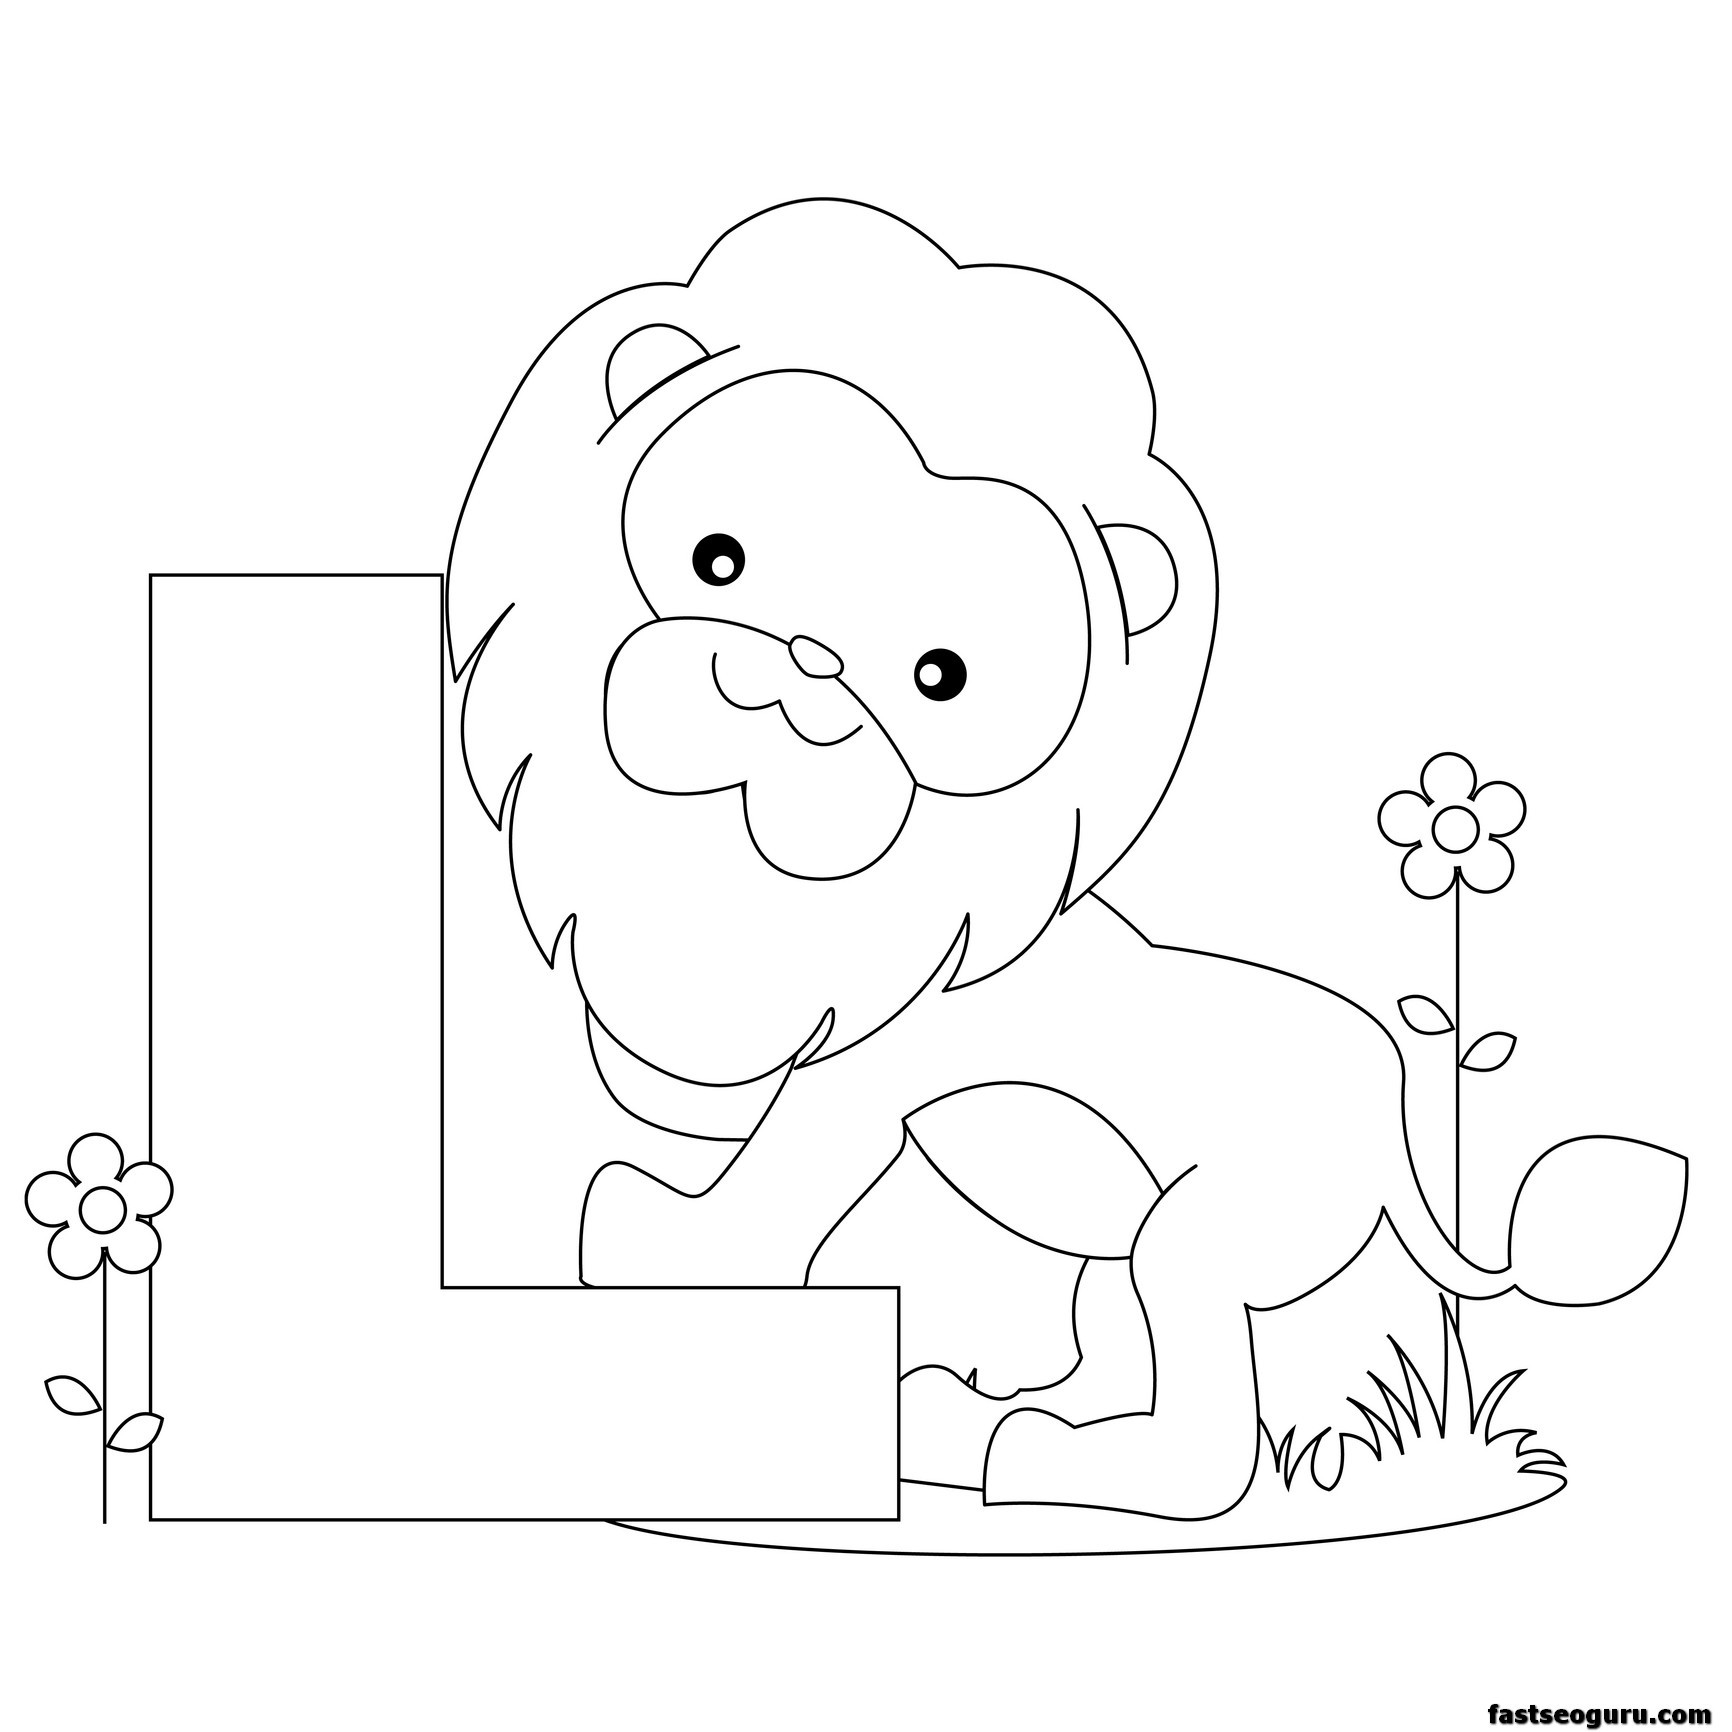 printable animal alphabet worksheets letter l is for lion printable coloring pages for kids